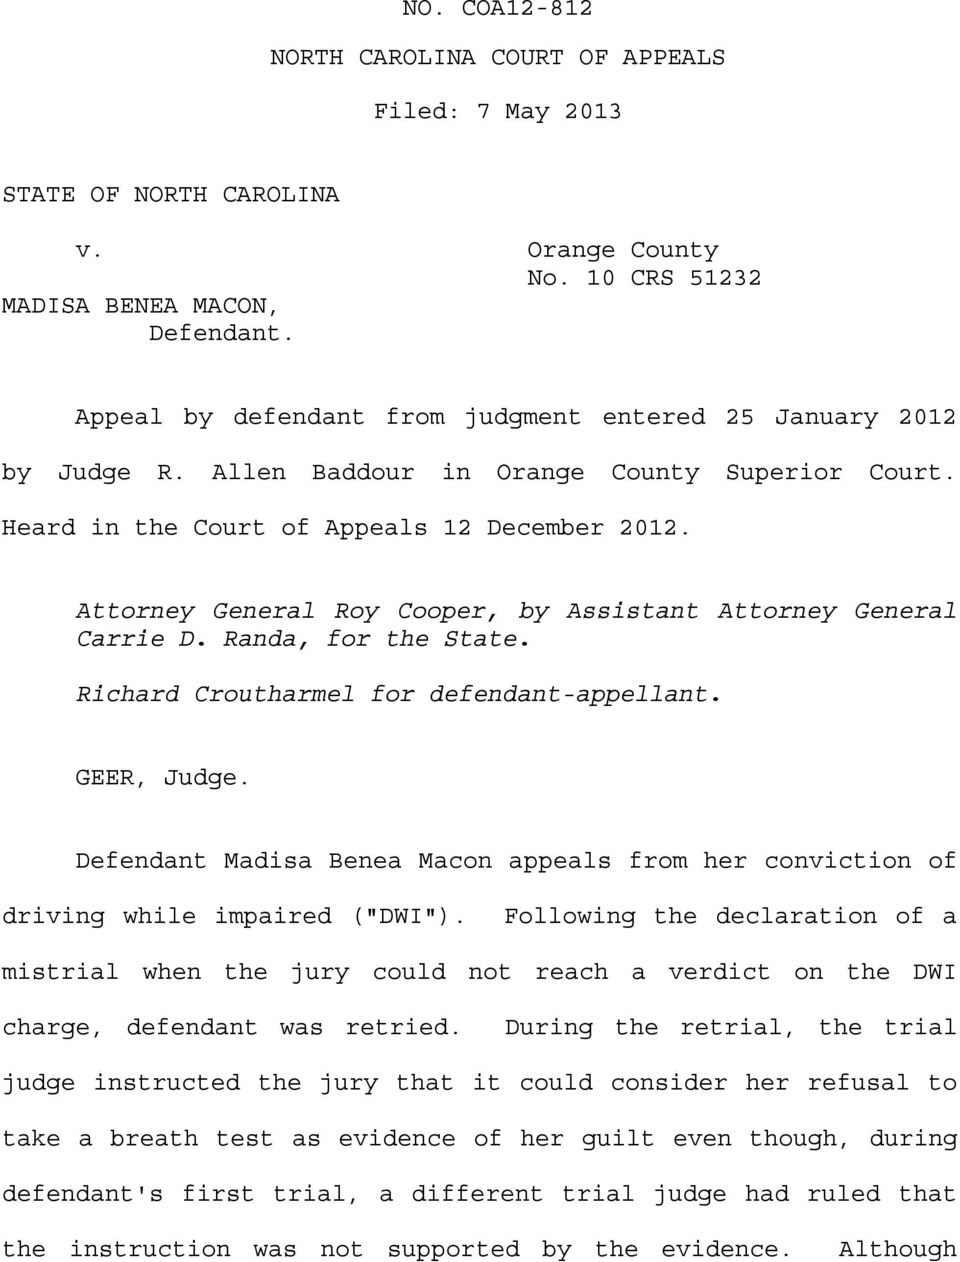 Attorney General Roy Cooper, by Assistant Attorney General Carrie D. Randa, for the State. Richard Croutharmel for defendant-appellant. GEER, Judge.